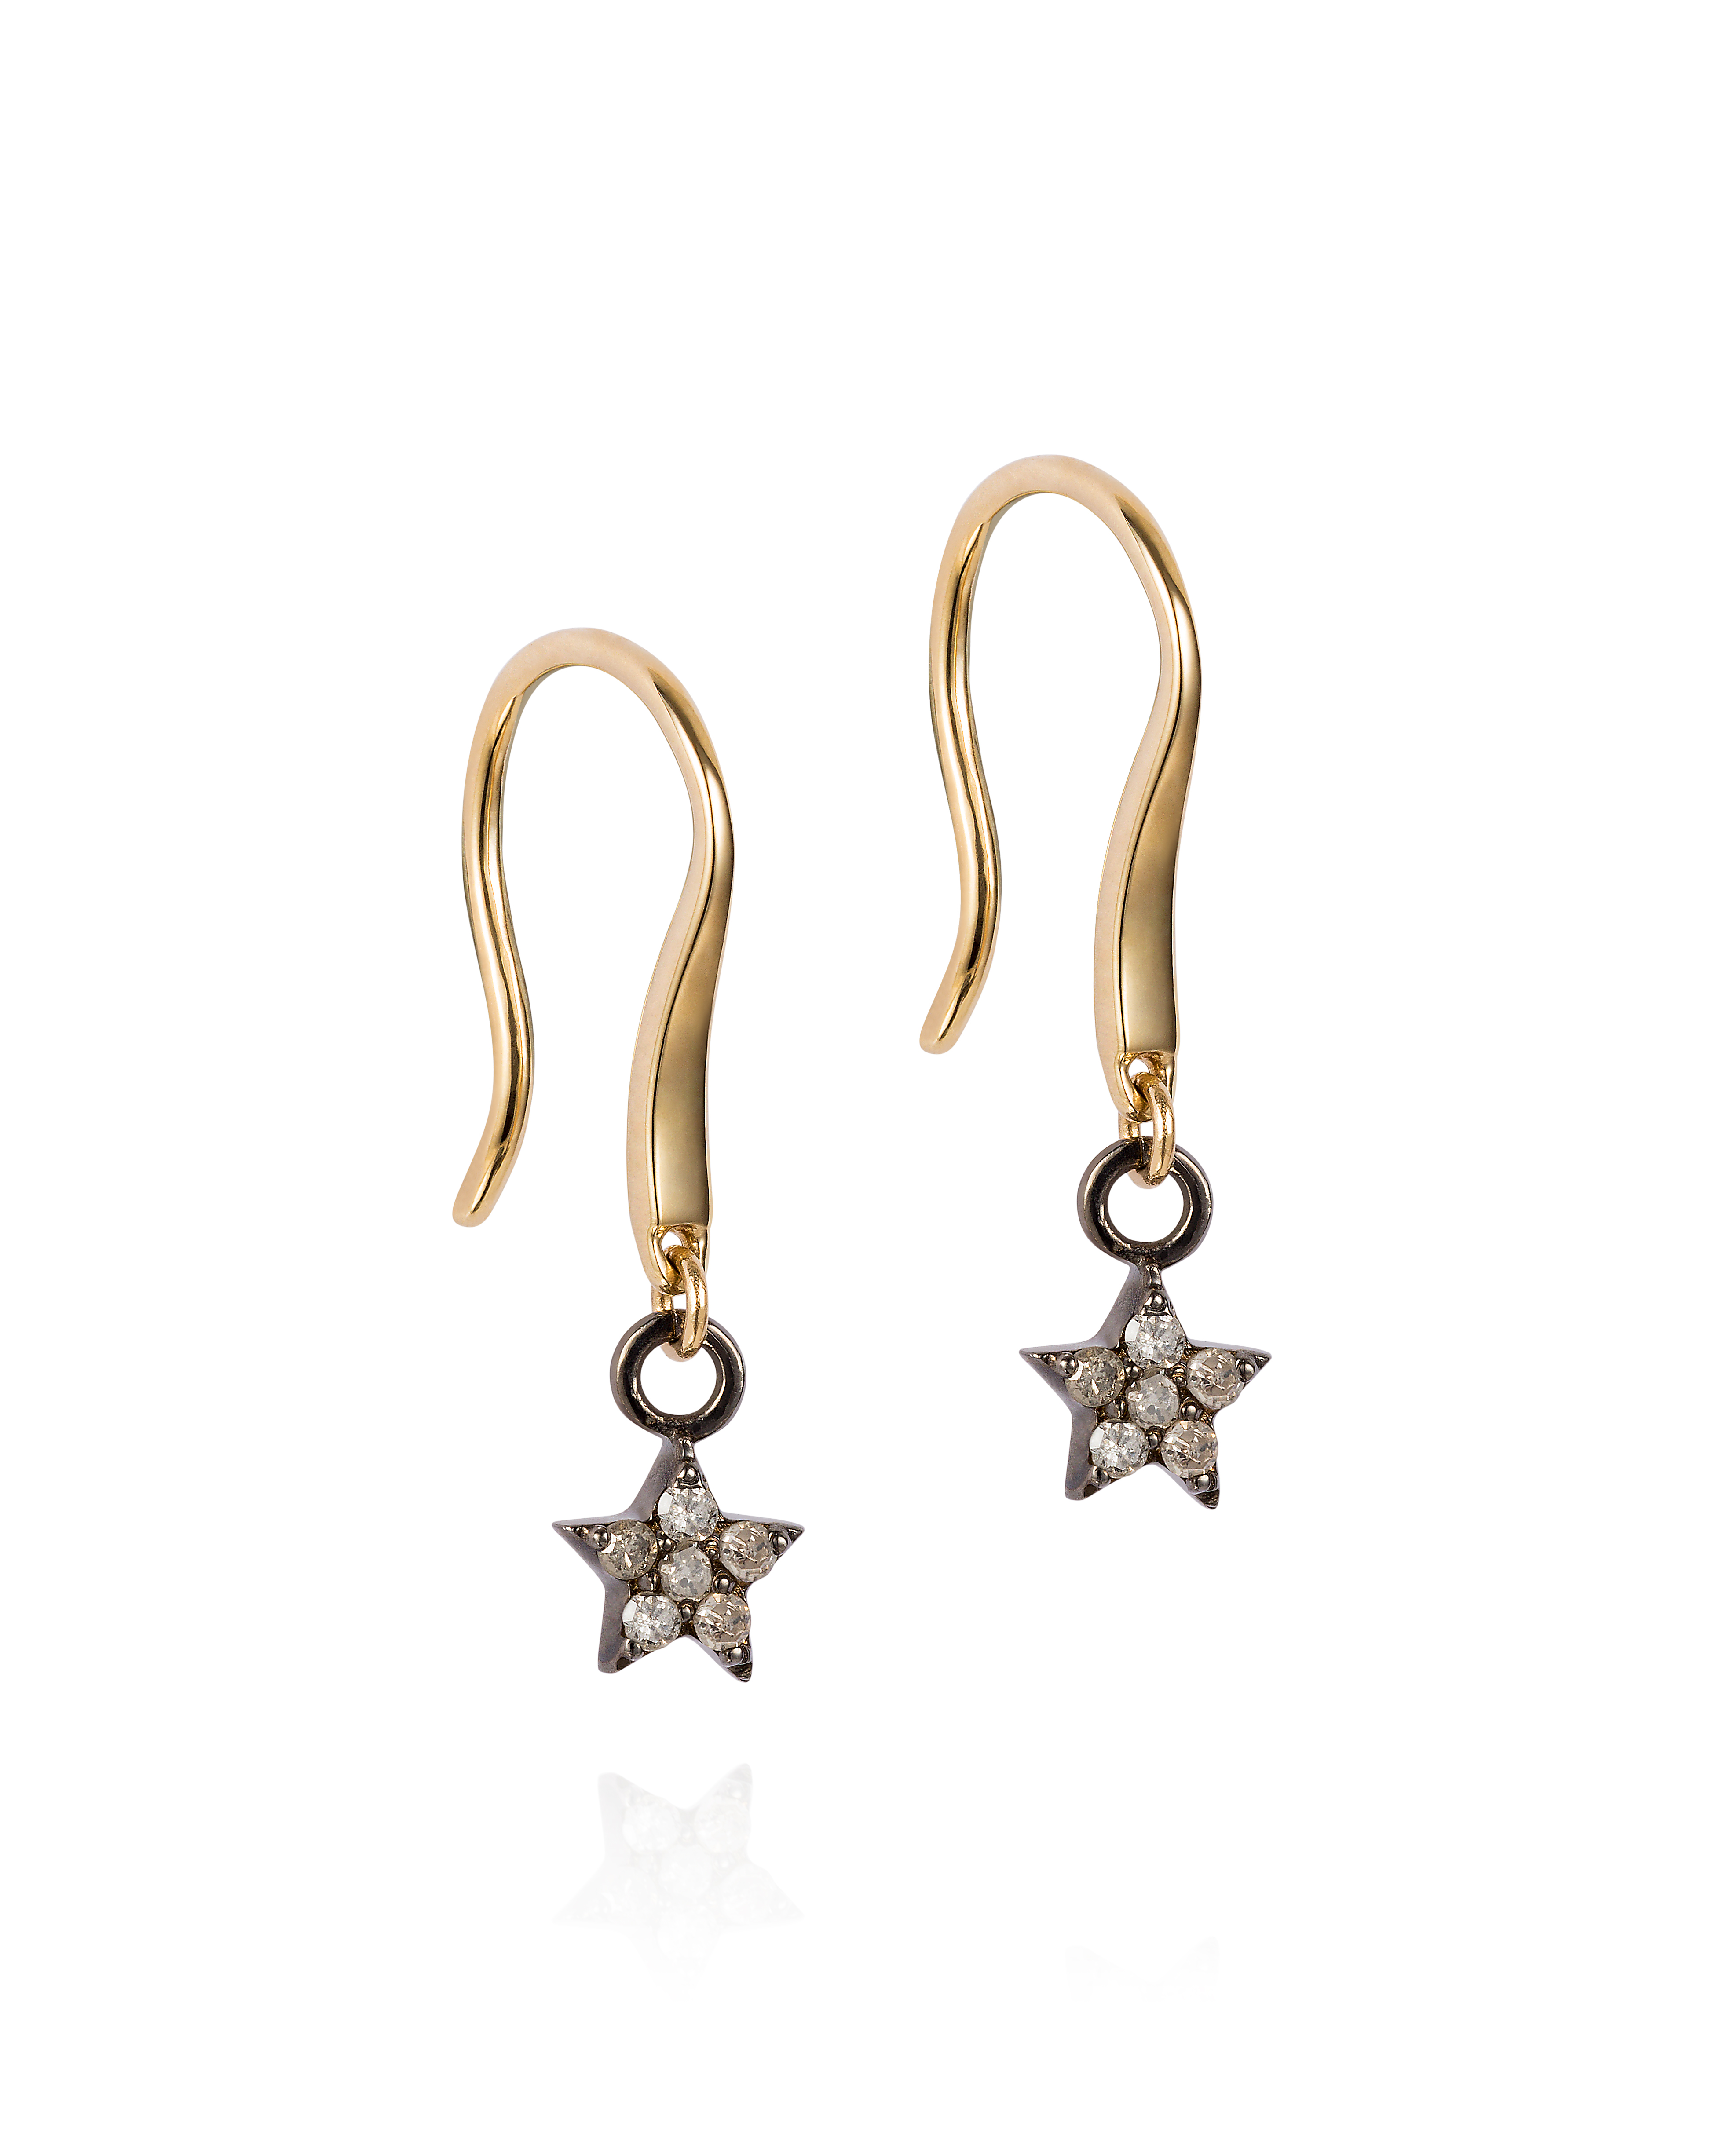 Diamond Set Star Drop Earrings £250, $360.57